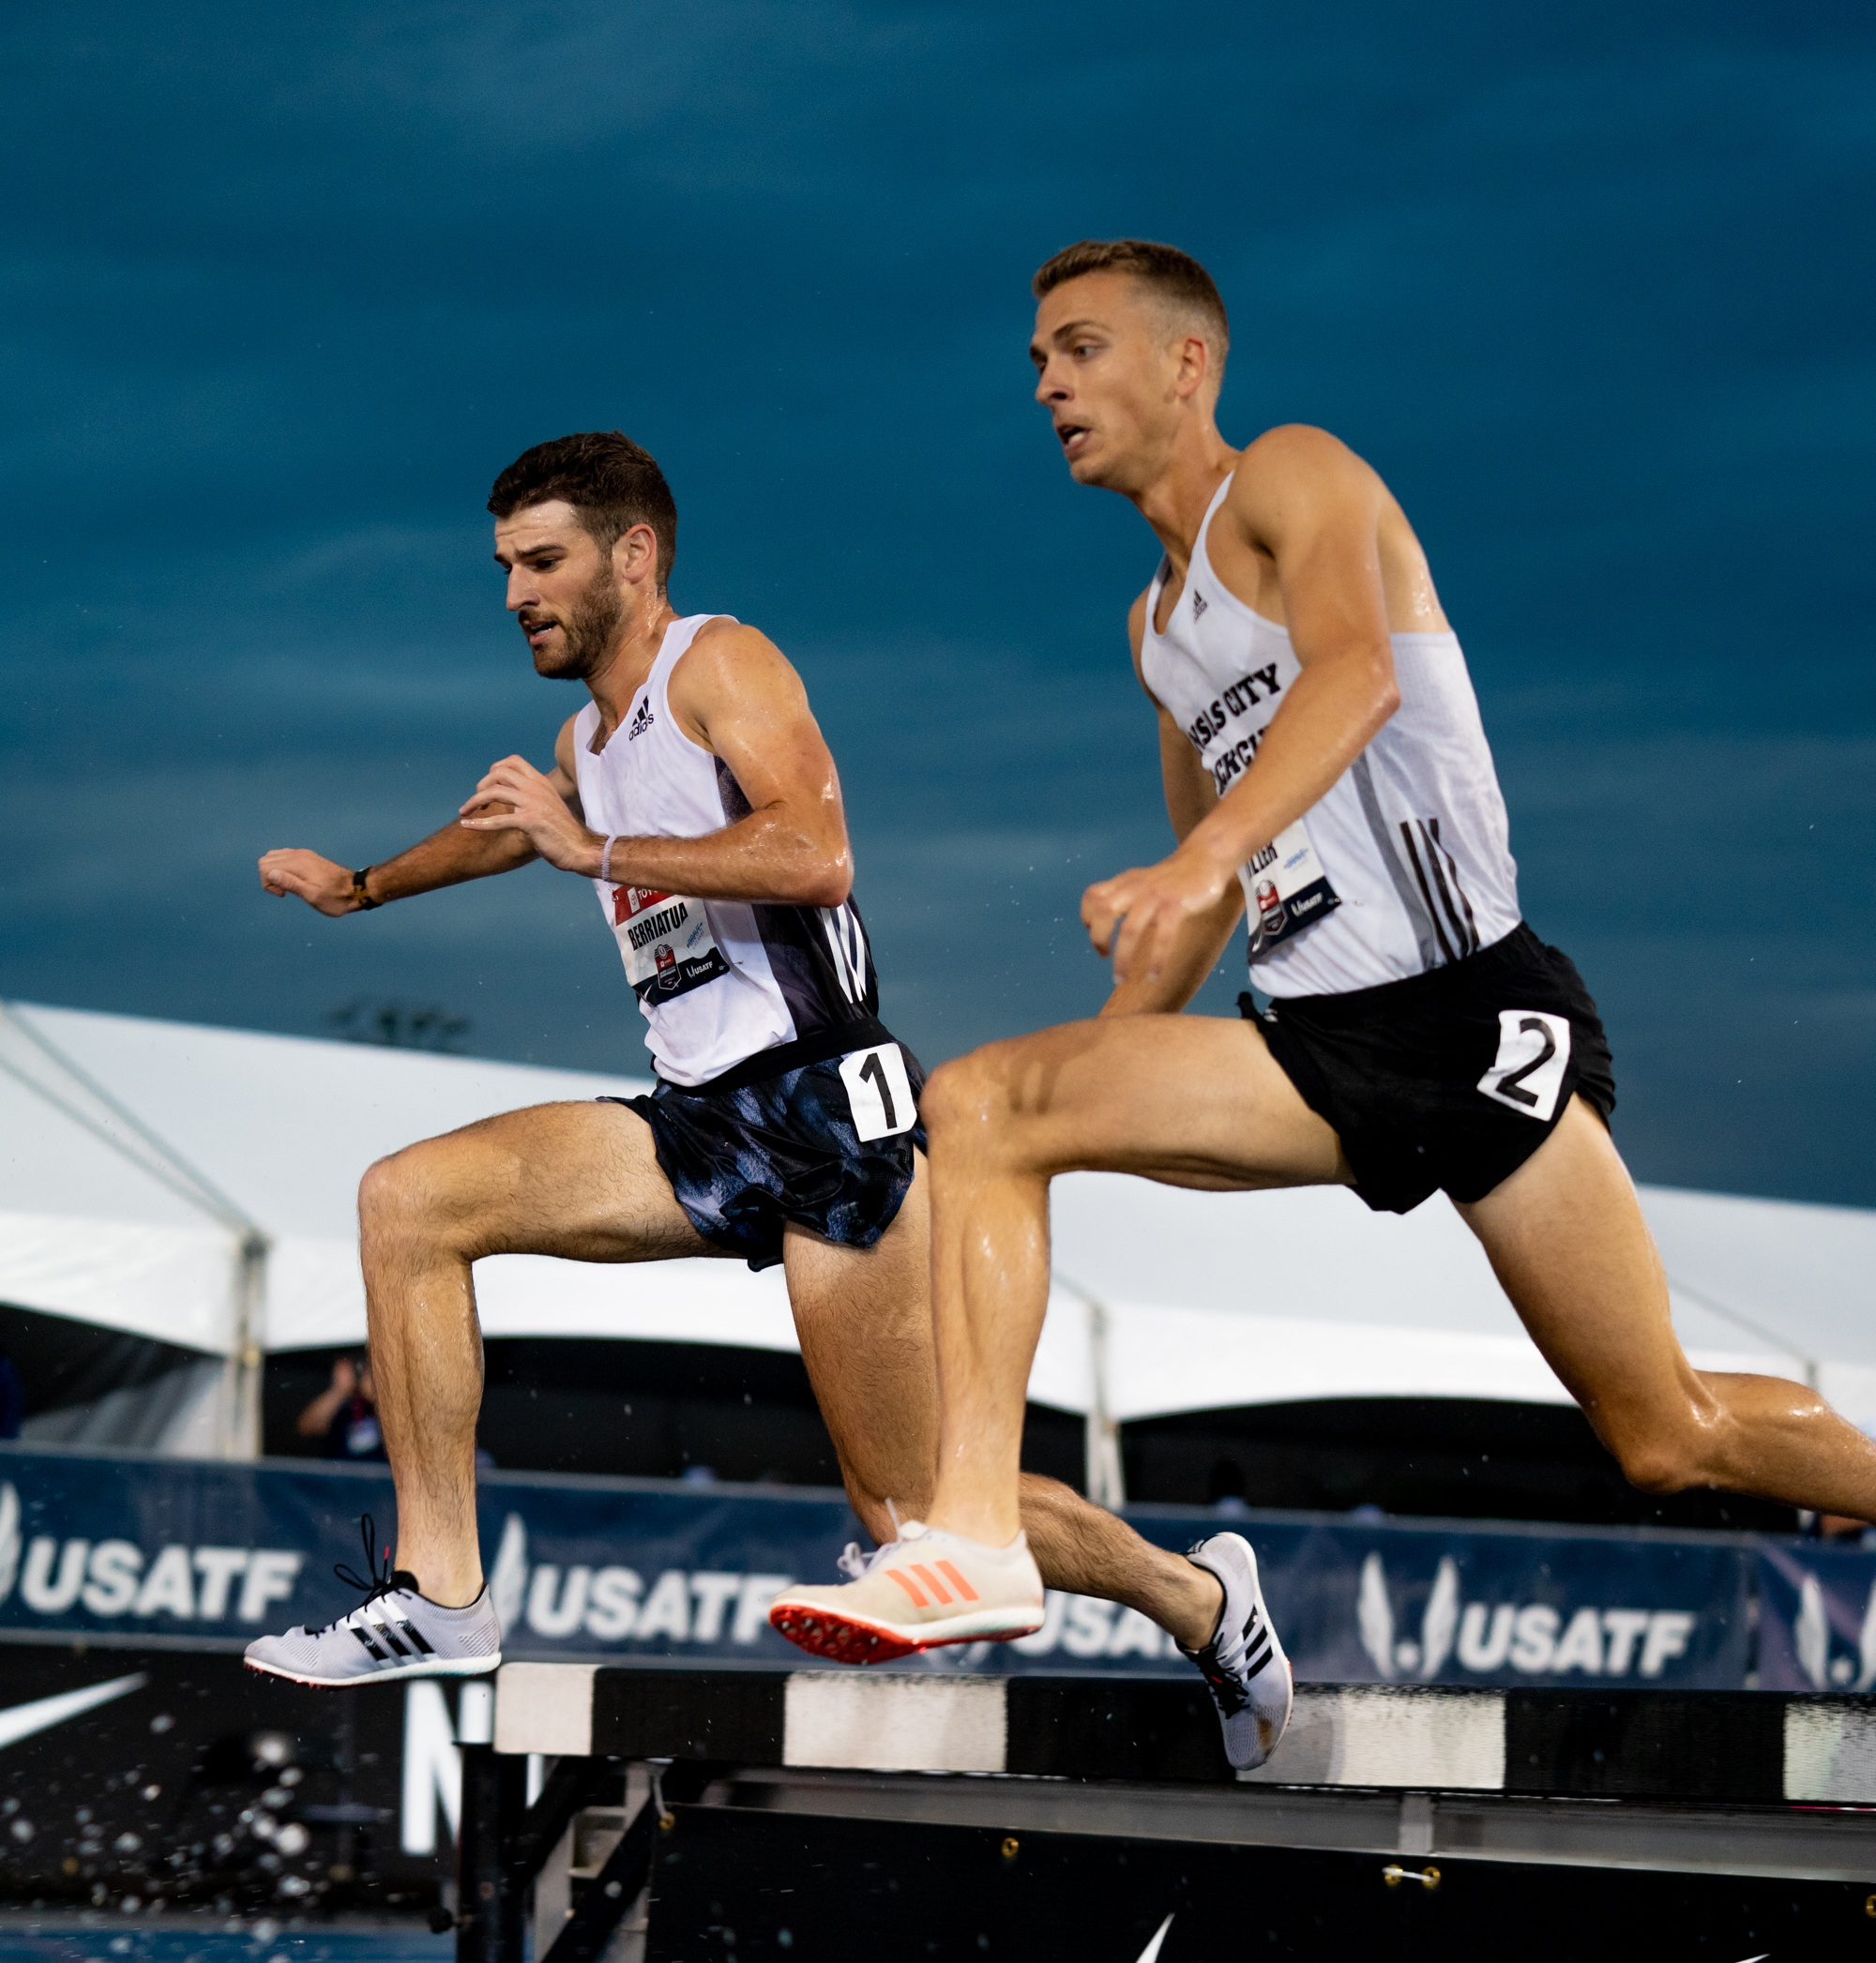 """An MRI following the USATF Outdoor Championships showed I had strained my adductor, torn my conjoint tendon, and developed signs of a sports hernia."" -"